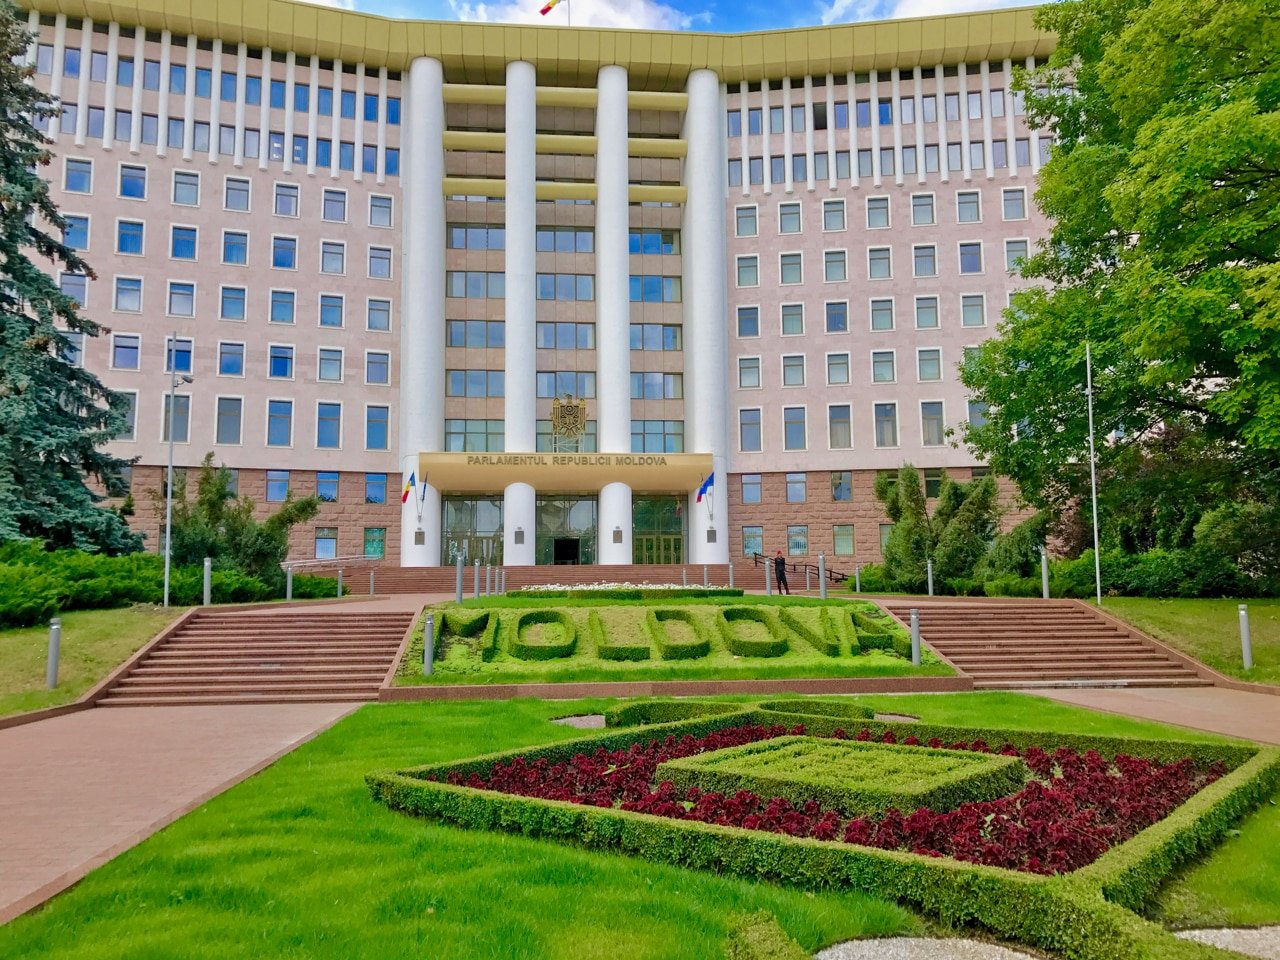 This is a picture of the building of Moldova's parliament. You can read about gambling, online gambling, sports betting, lottery, bingo and bitcoin gambling laws, regulations in the Republic of Moldova.